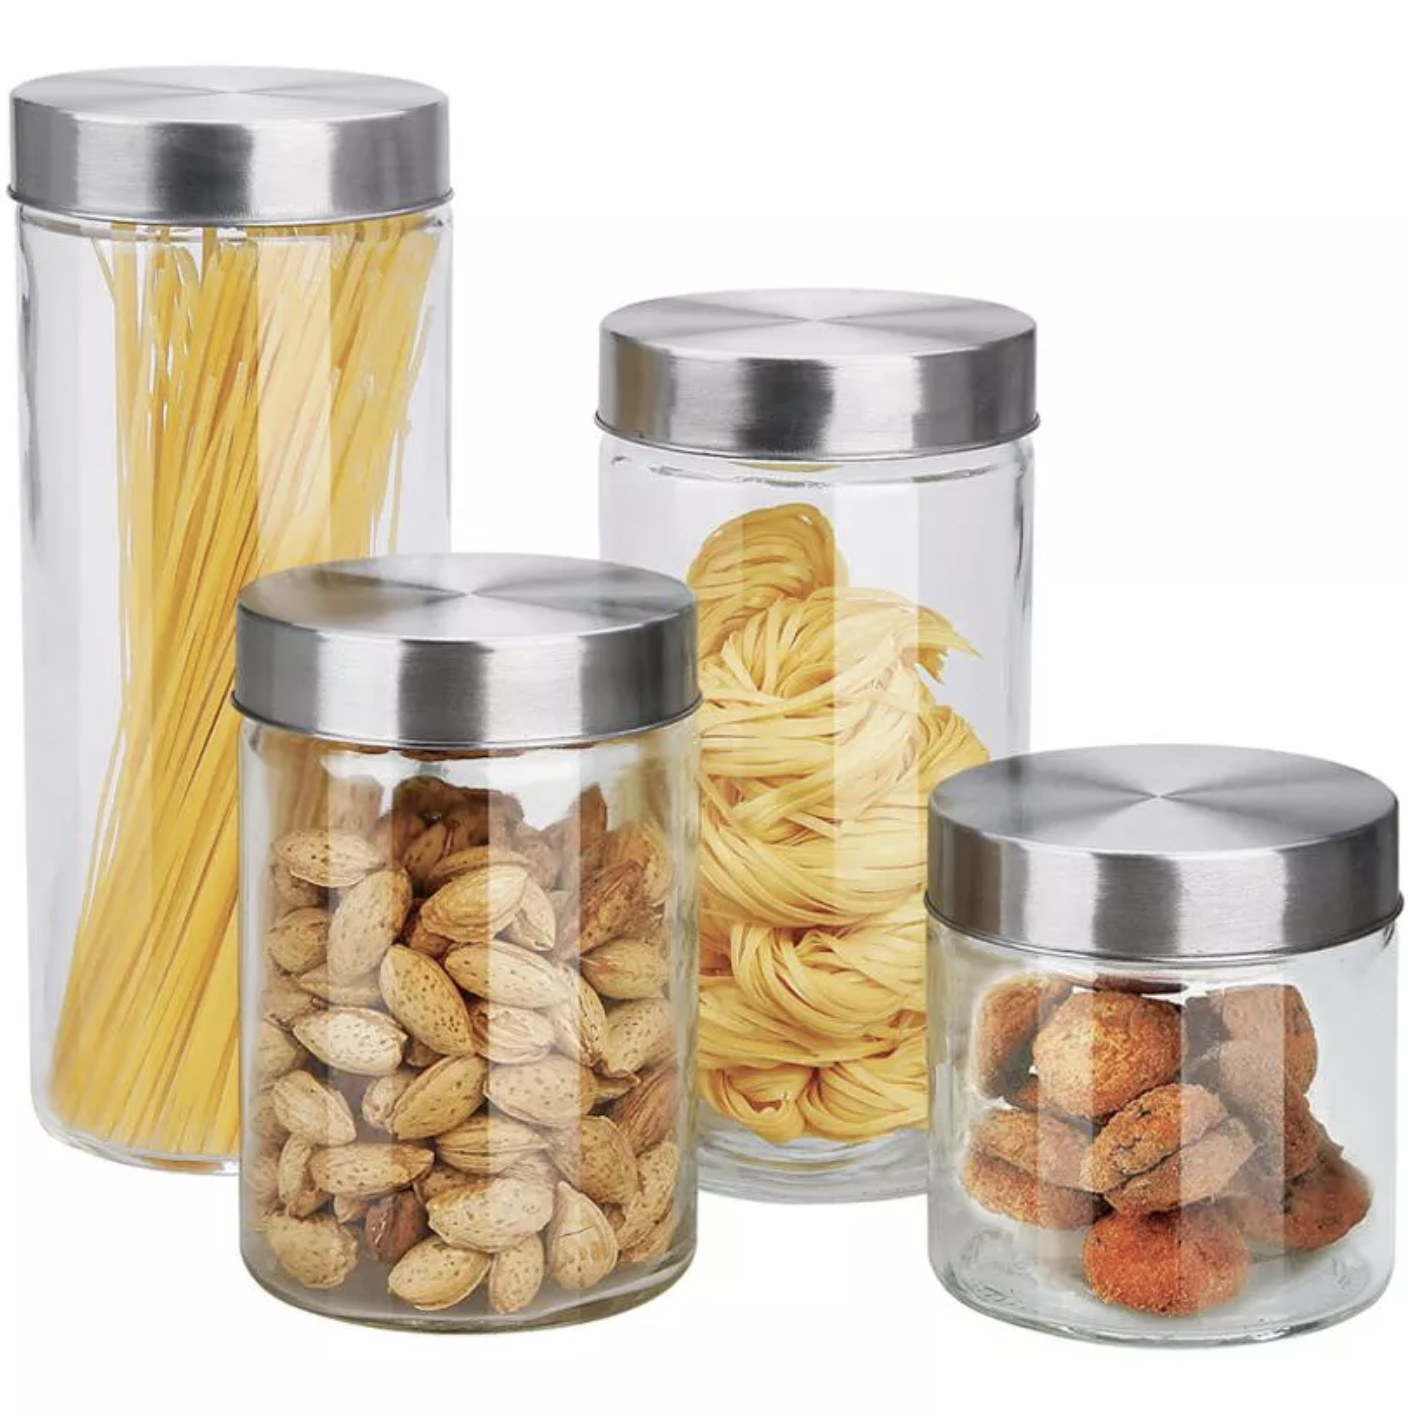 Four canisters with stainless steel lids and food inside